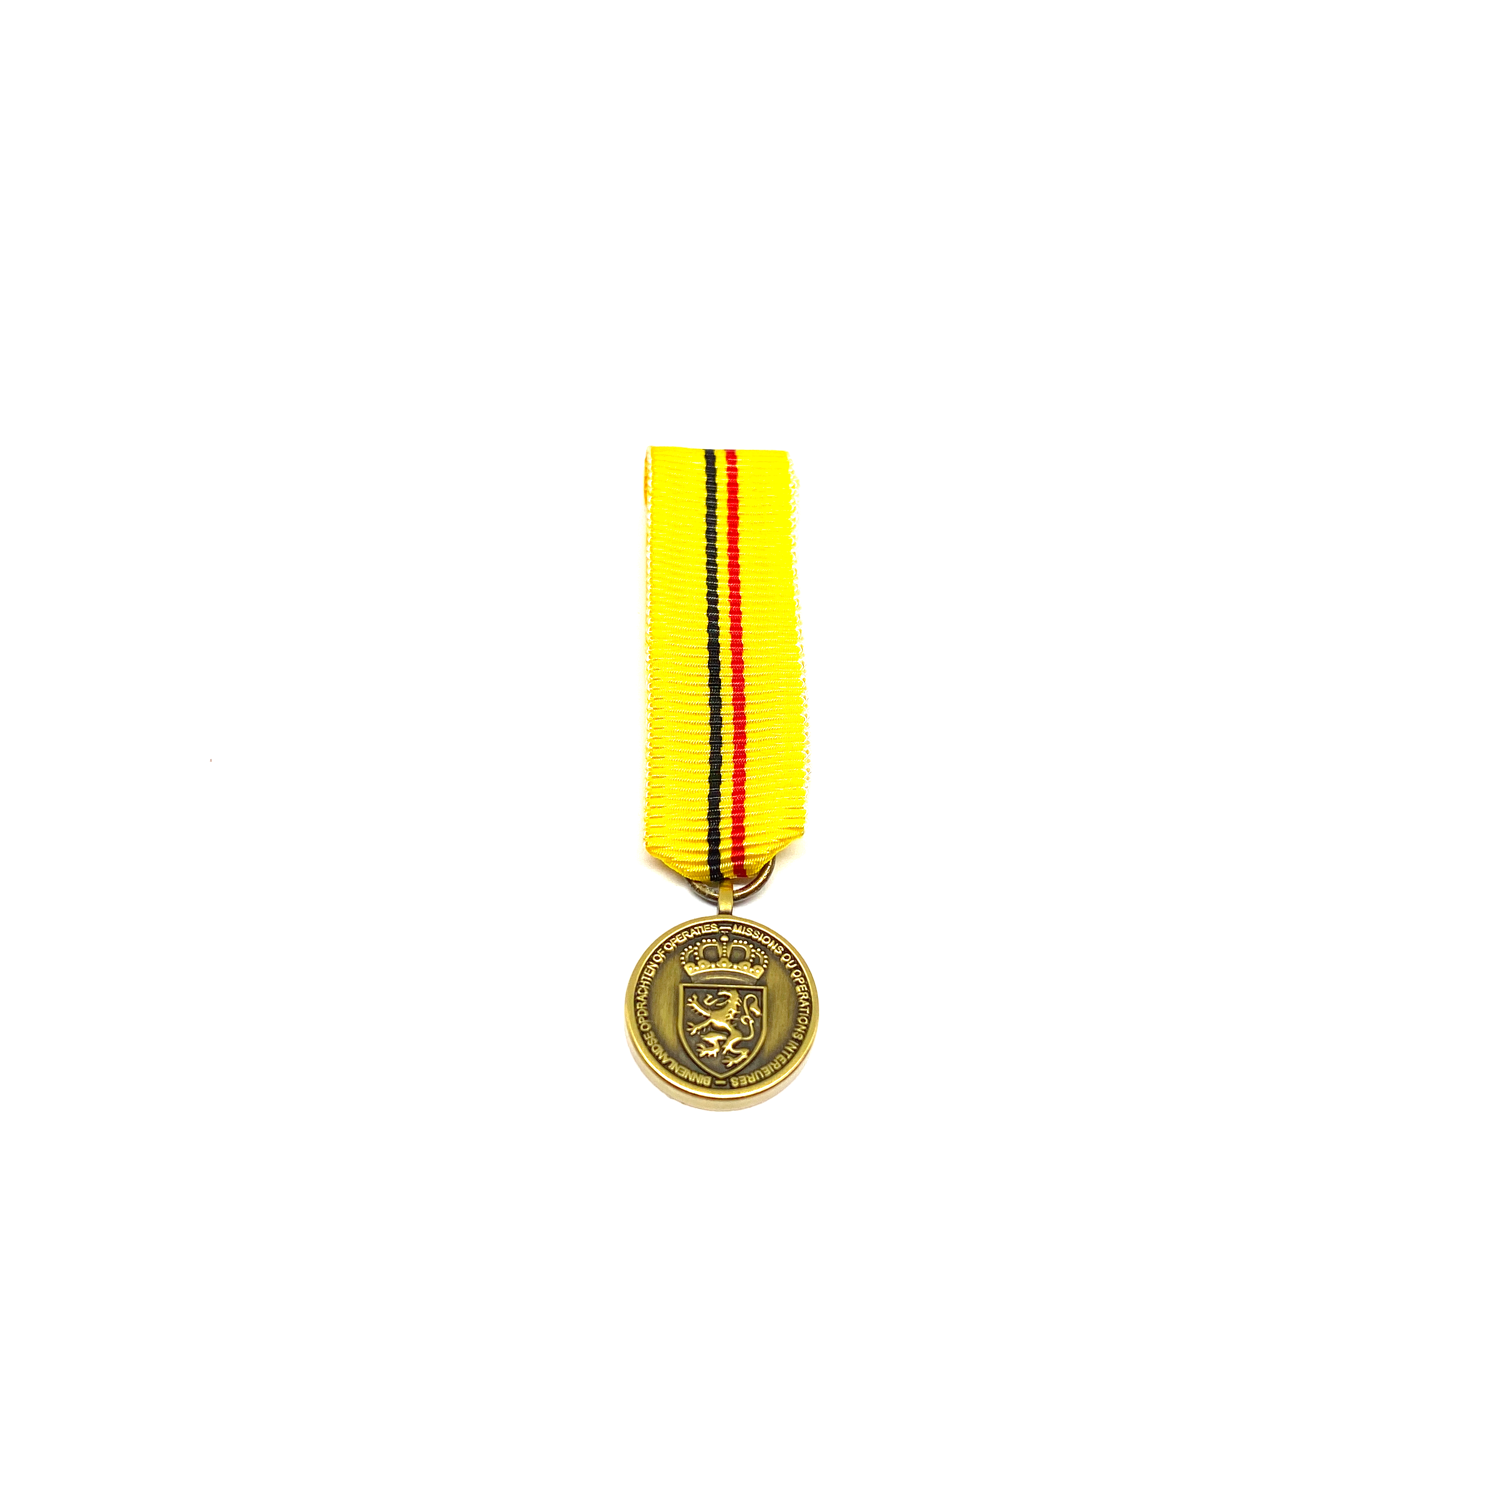 Commemorative Medal for Internal Operations or Missions